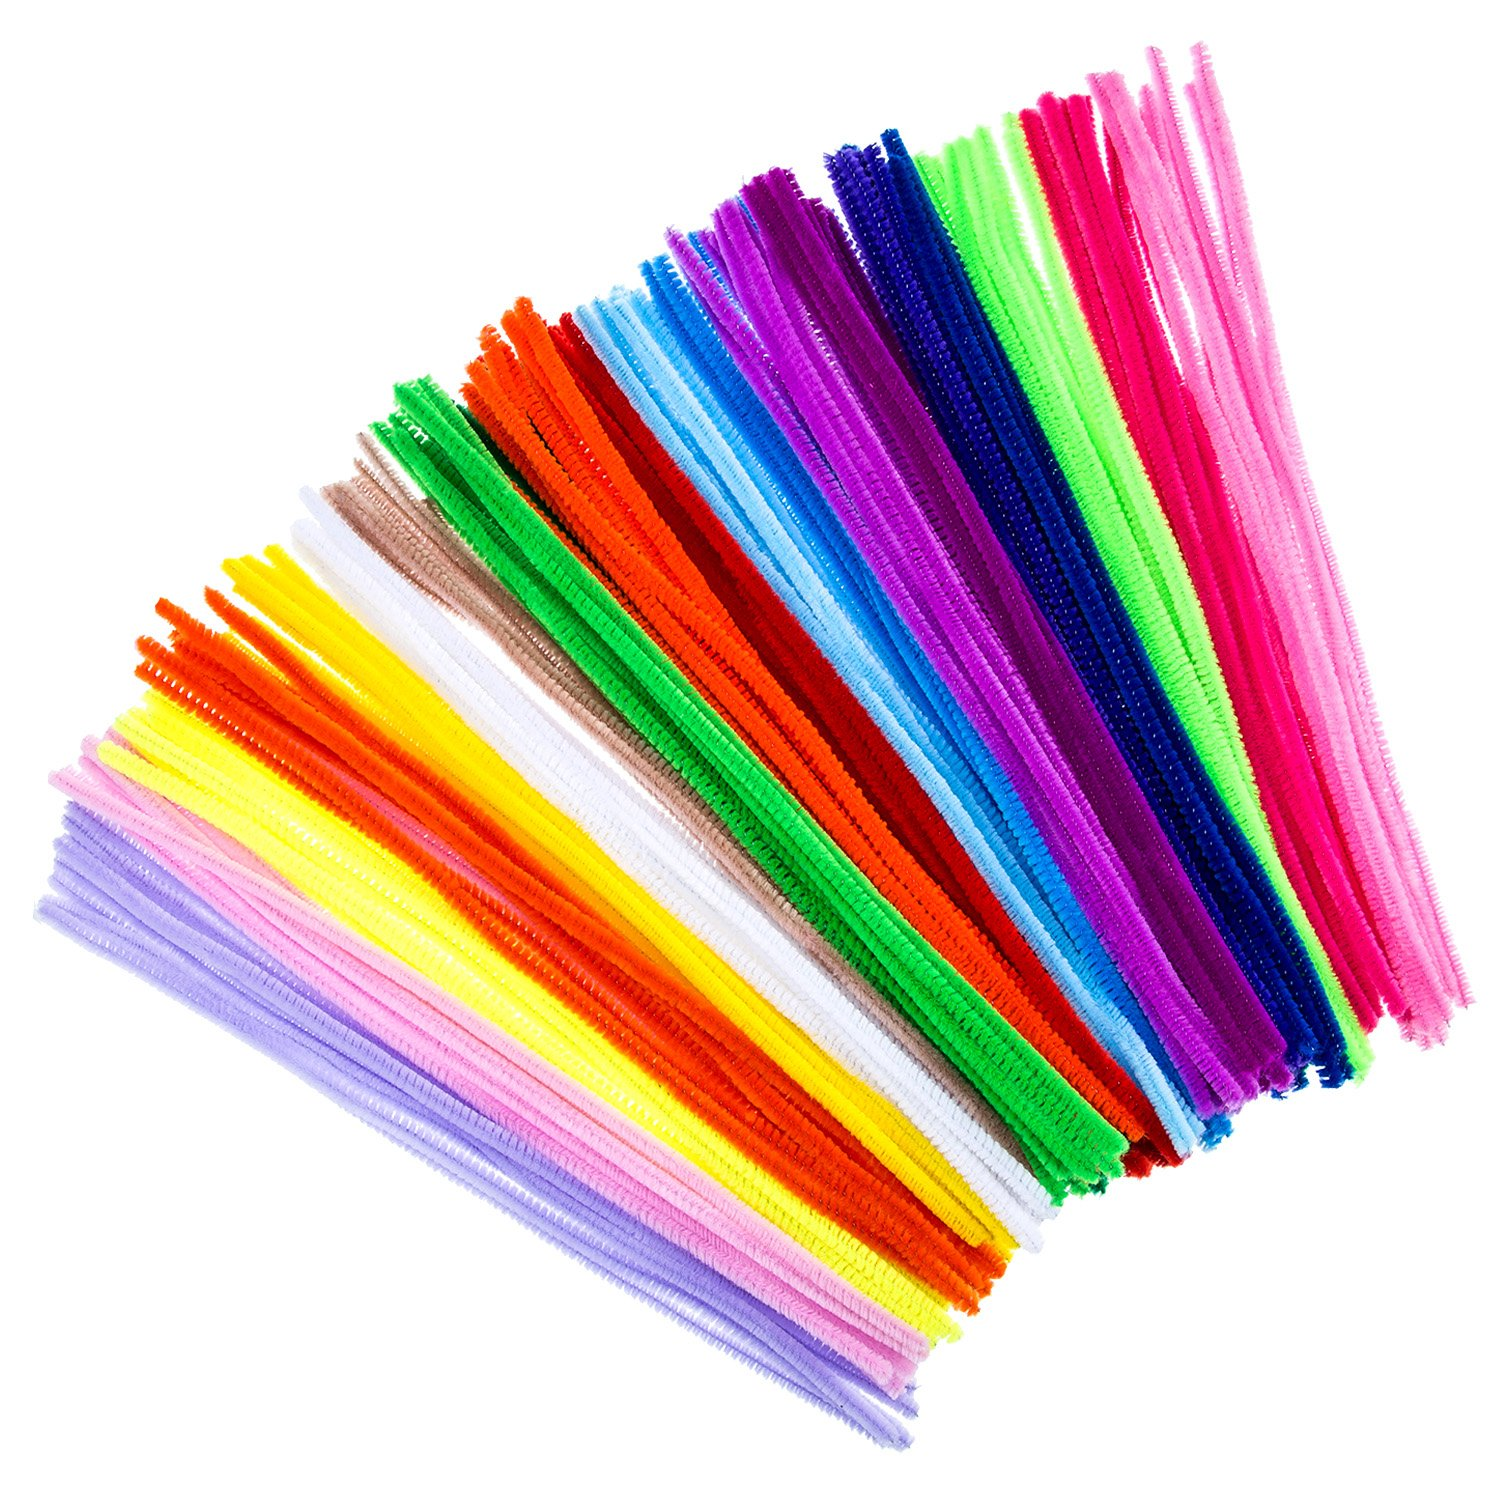 Bememo 200 Pieces Pipe Cleaners Chenille Stems 6 mm x 12 Inch for Diy Art Craft Assorted Colors